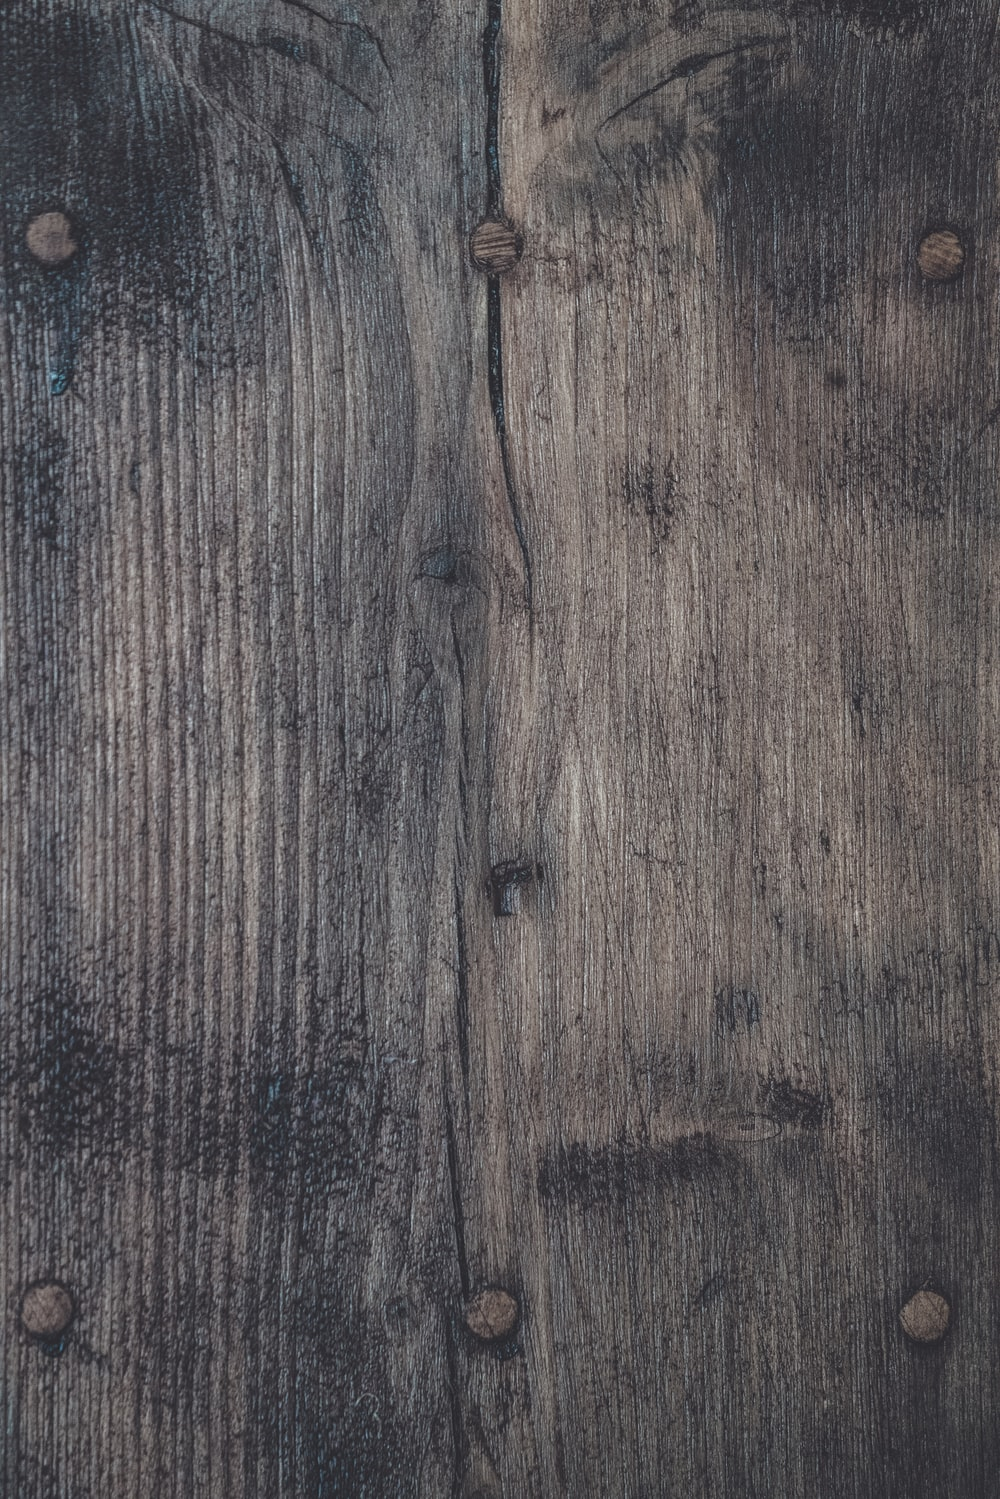 Wood Texture Pictures